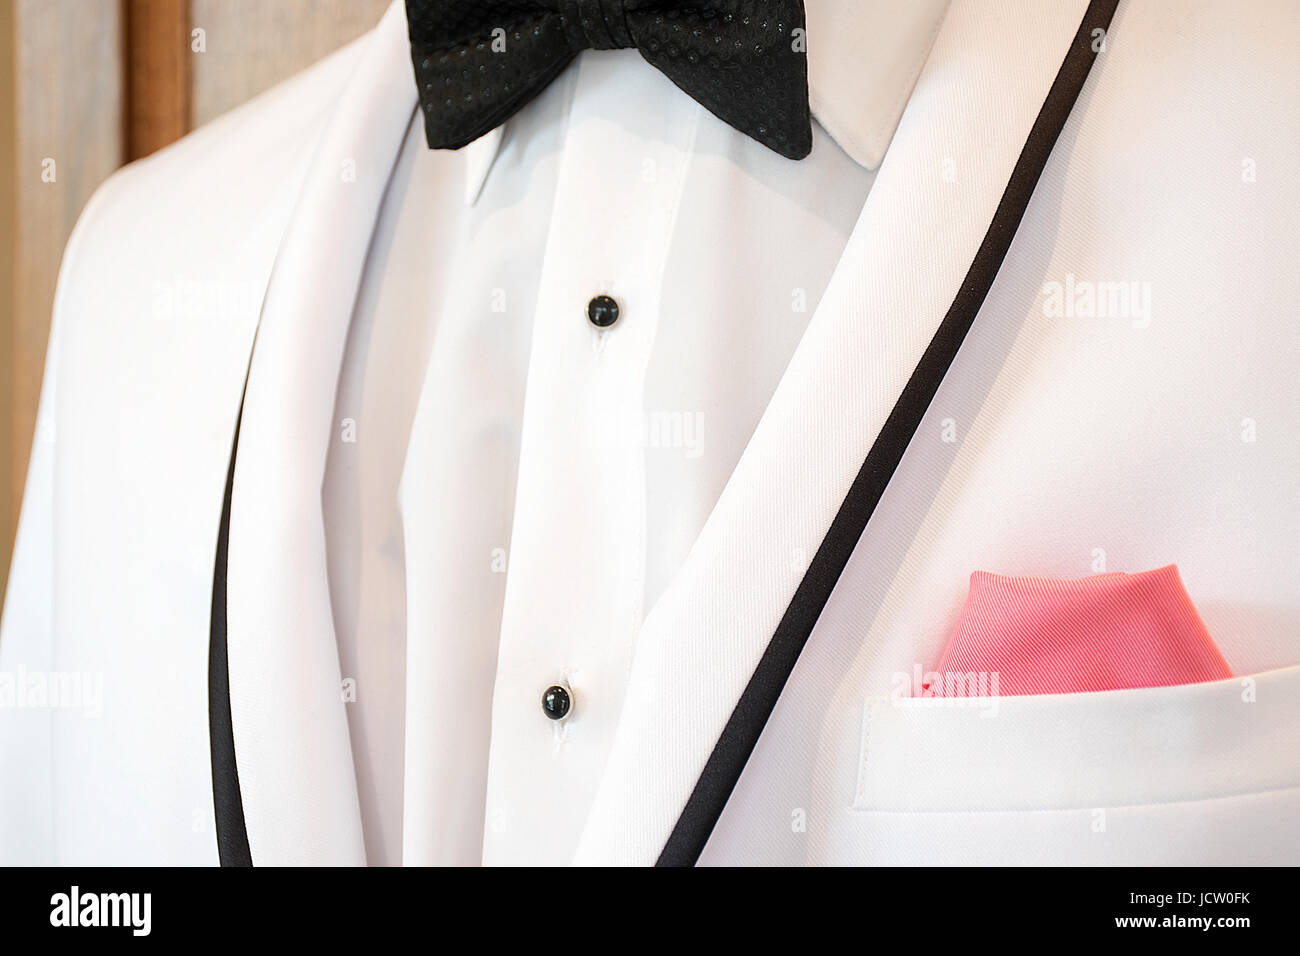 de6fe3caf434a white tuxedo jacket with black bow tie and pink handkerchief in pocket -  Stock Image